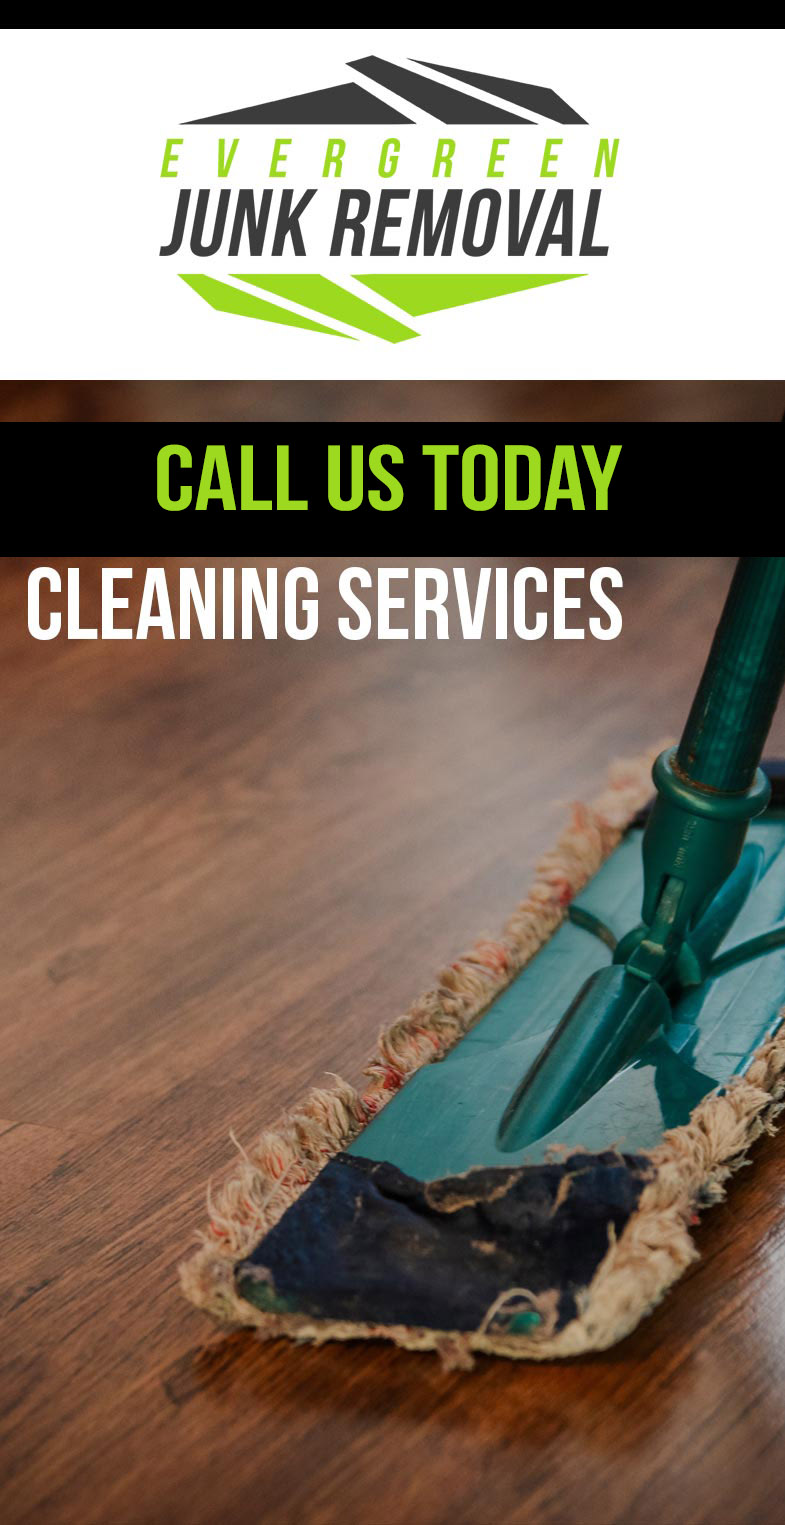 Roosevelt Garden Office Cleaning Services